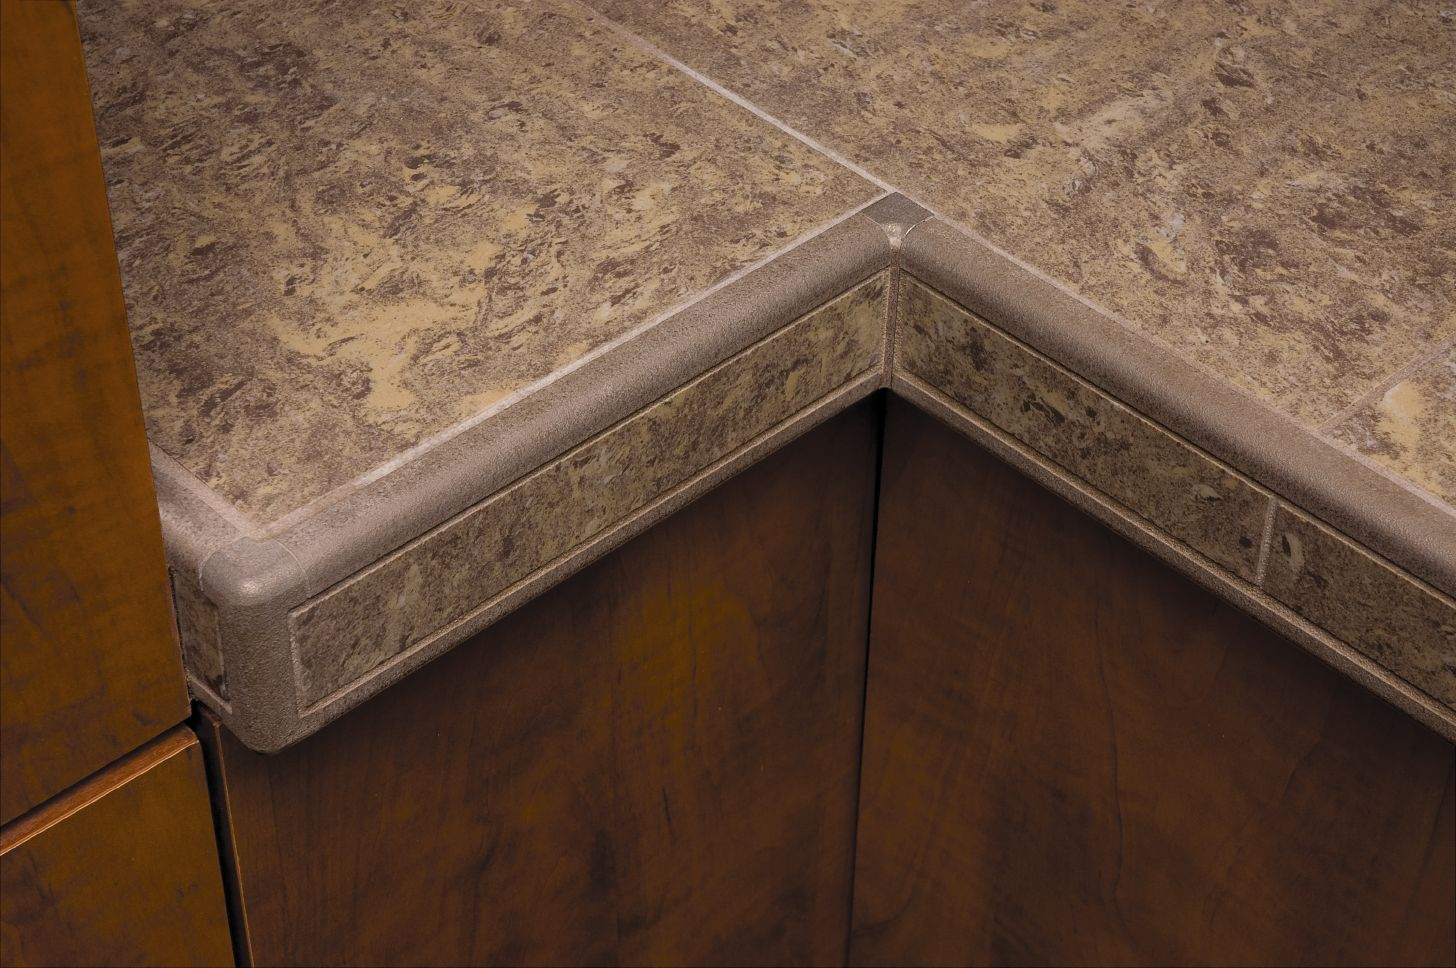 Countertop Corners Edges : RONDEC-CT double-rail edging profile and matching corners applied to ...